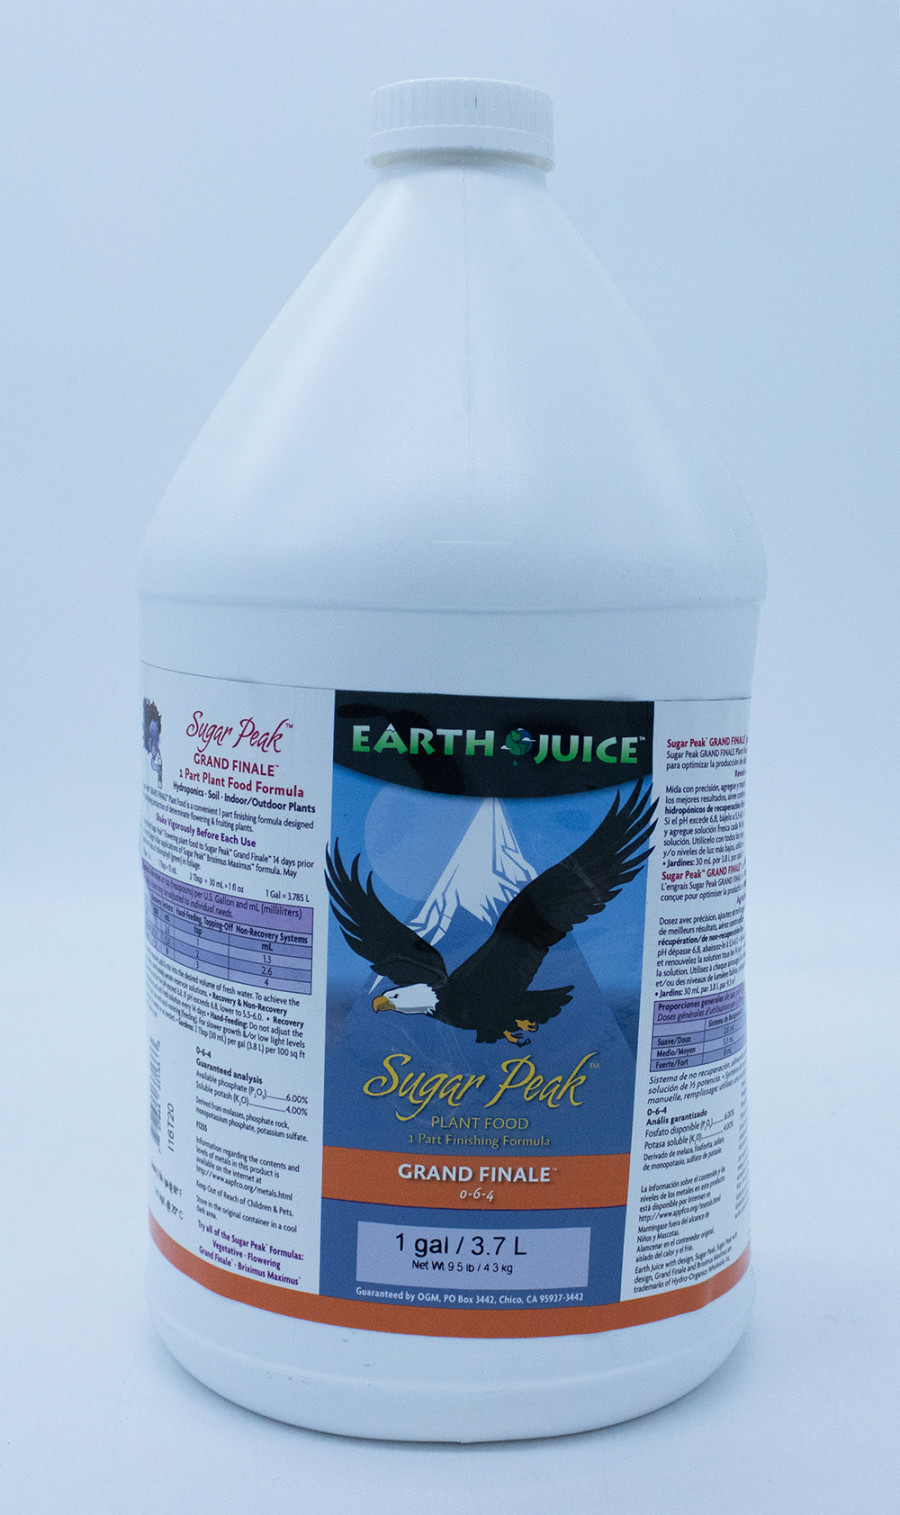 Earth Juice Sugar Peak Grand Finale Rock Phosphate 0-6-4 4ea/1 gal